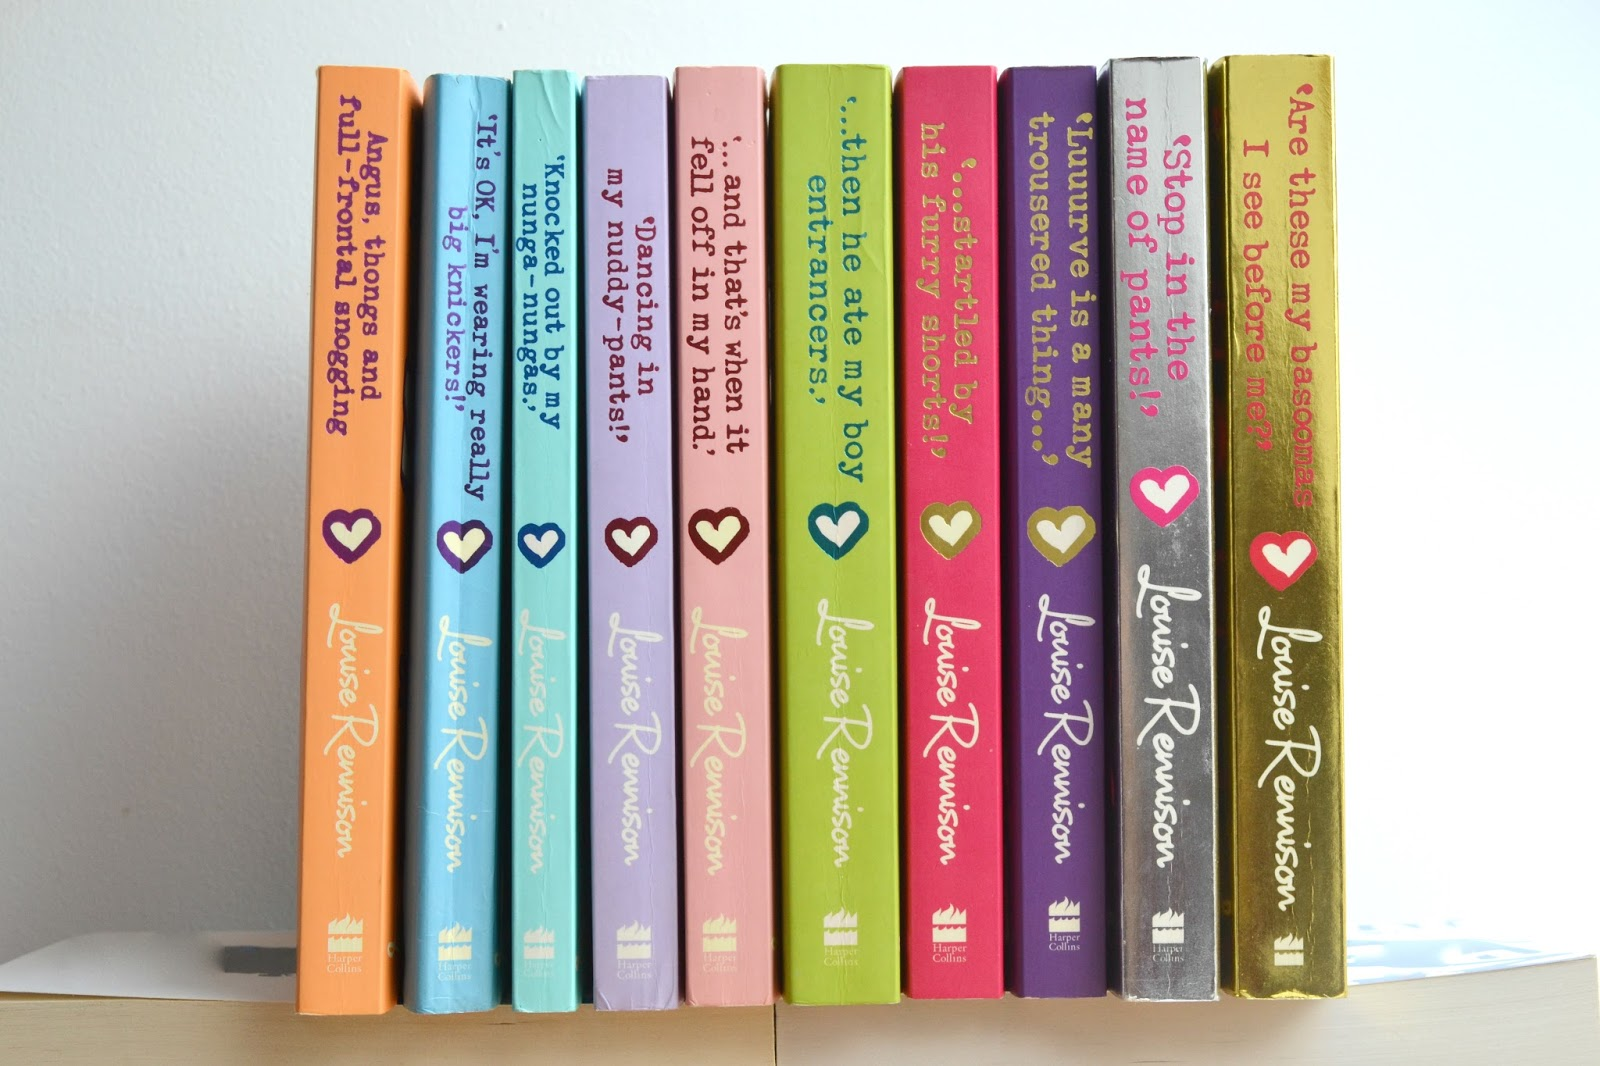 The Georgia Nicolson Series by Louise Rennison